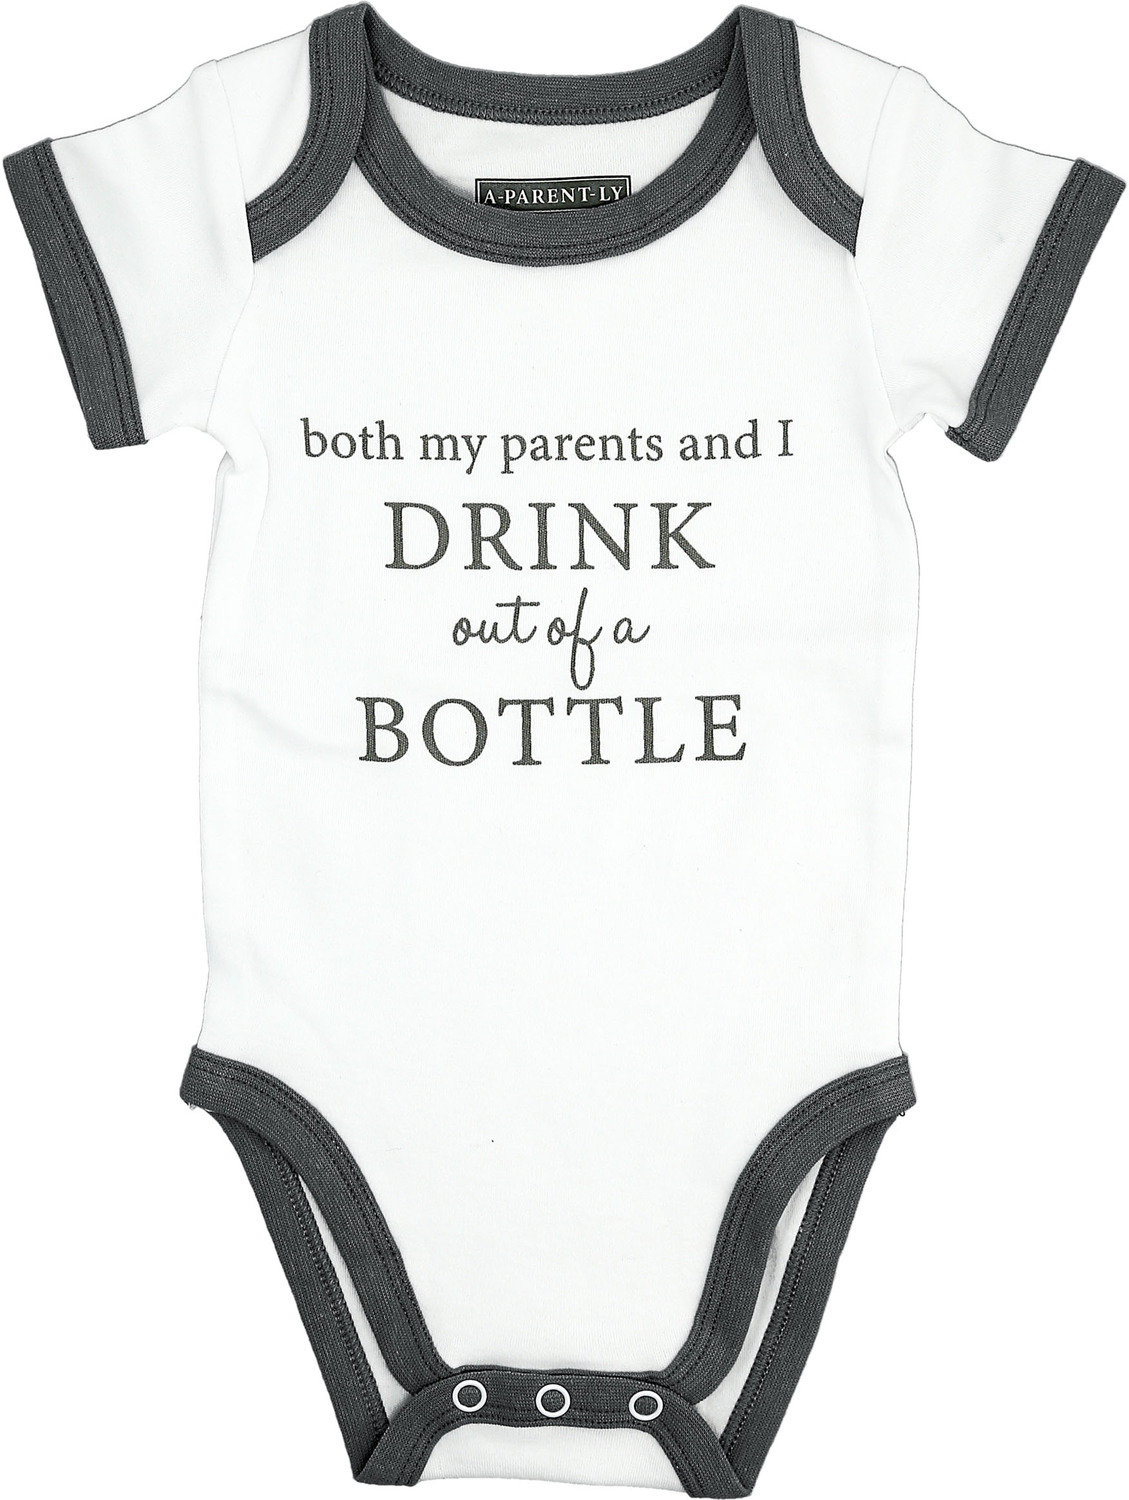 Bottle by A-Parent-ly - Bottle - 6-12 Months Gray Trimmed Bodysuit